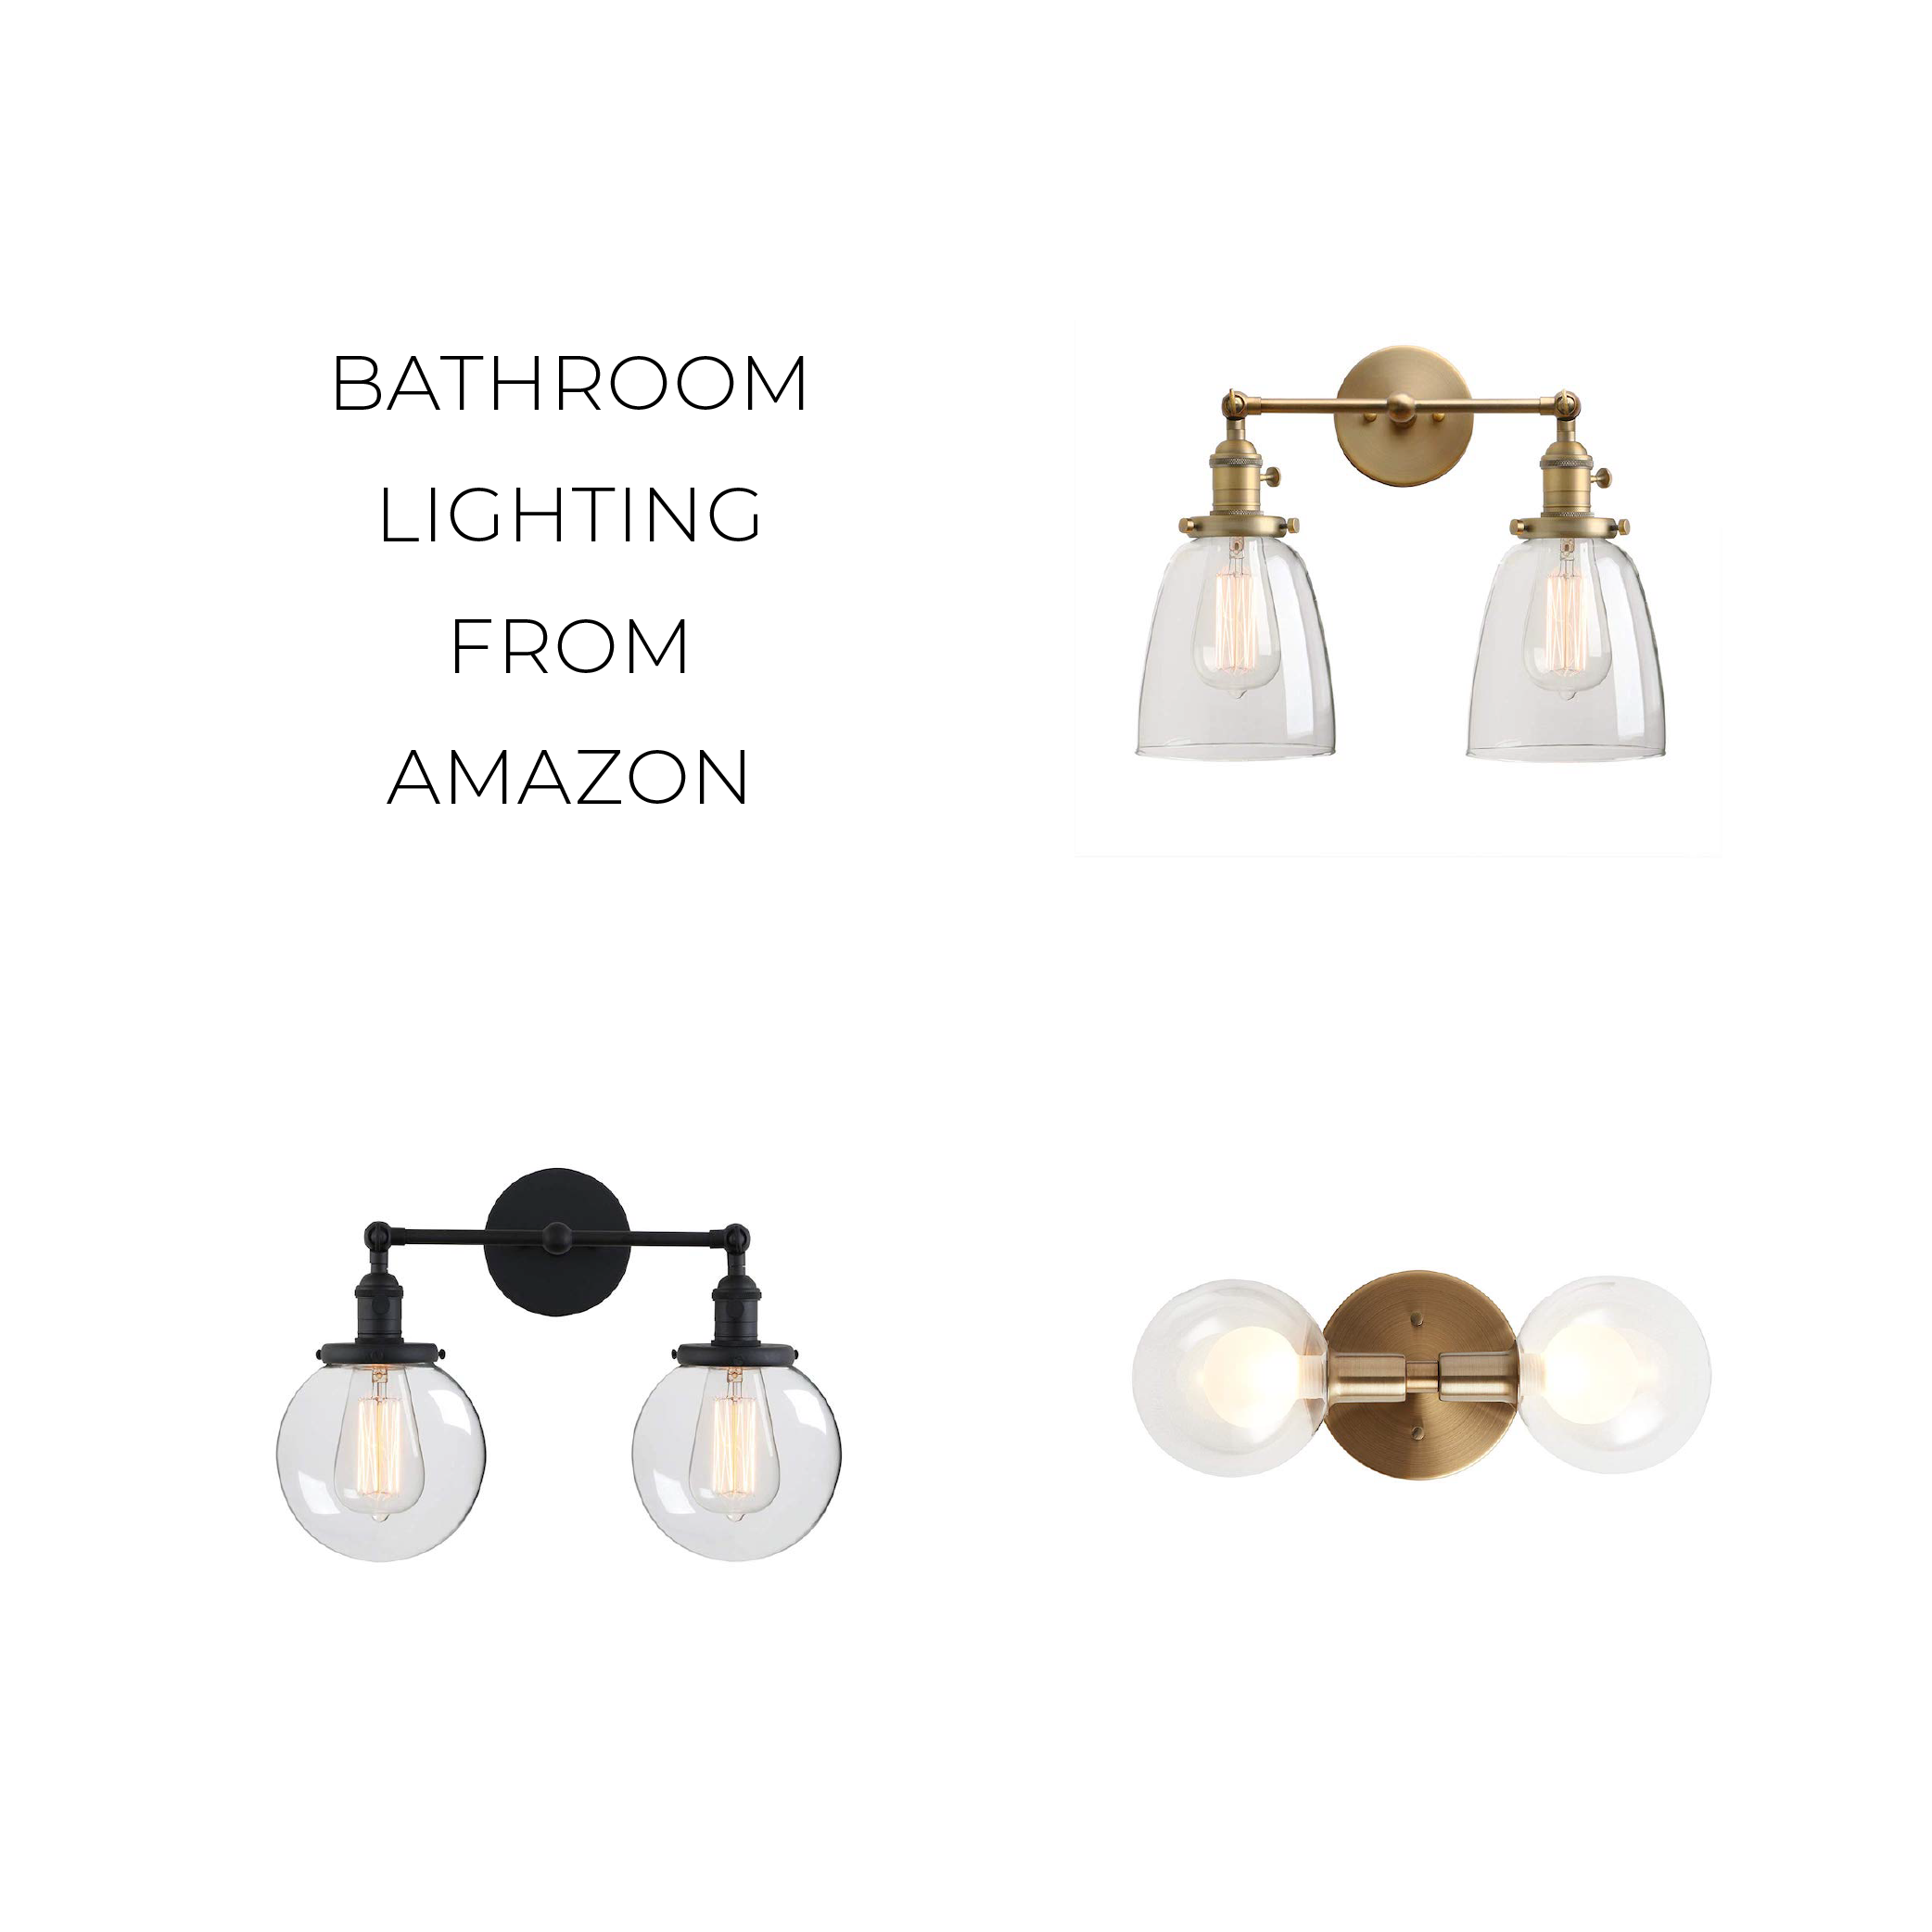 Bathroom Lights from Amazon